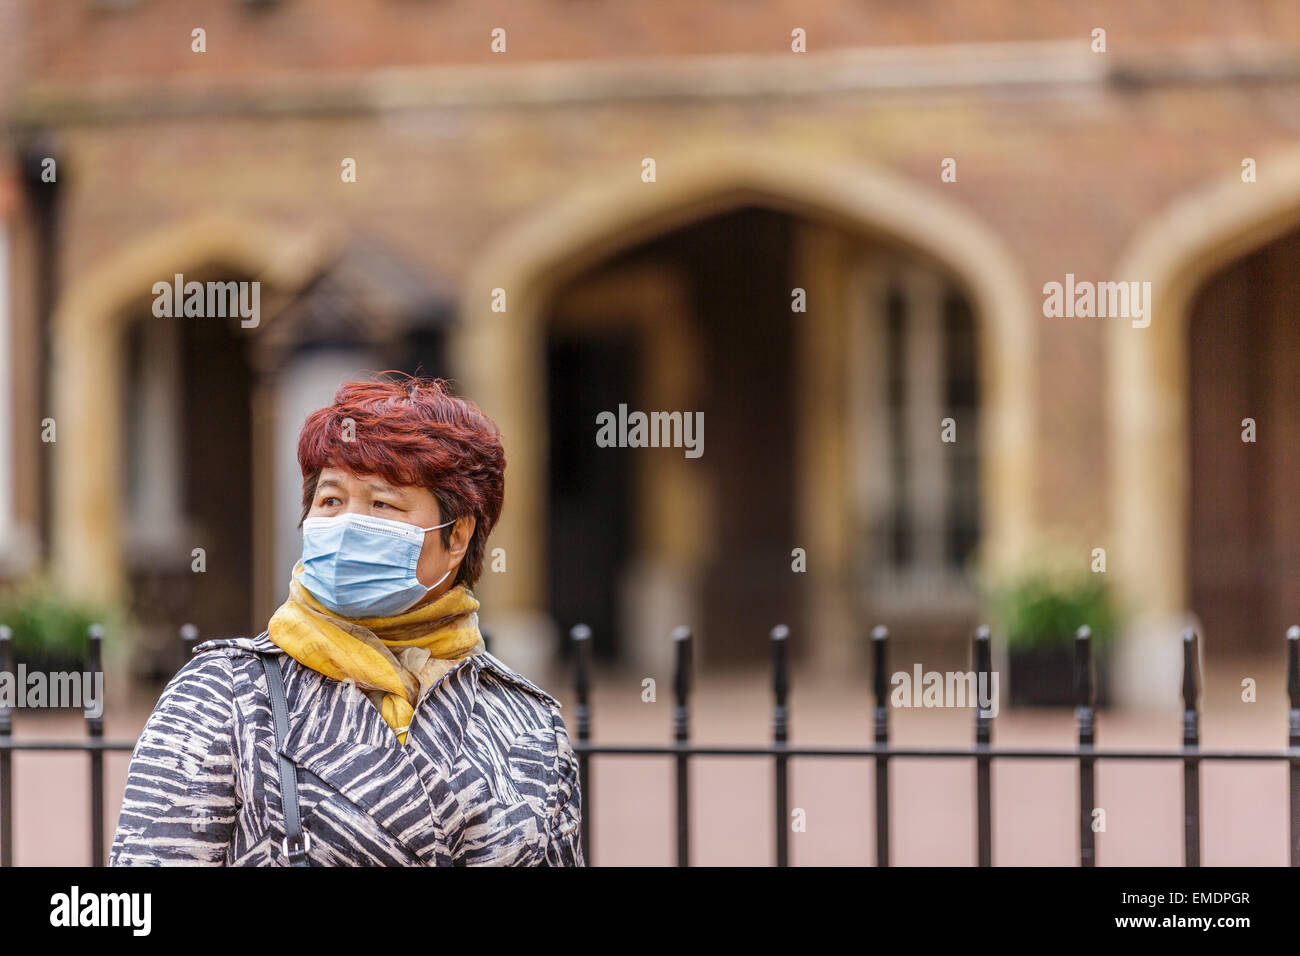 A female Oriental tourist with a surgical face mask standing outside St James's Palace London England UK - Stock Image